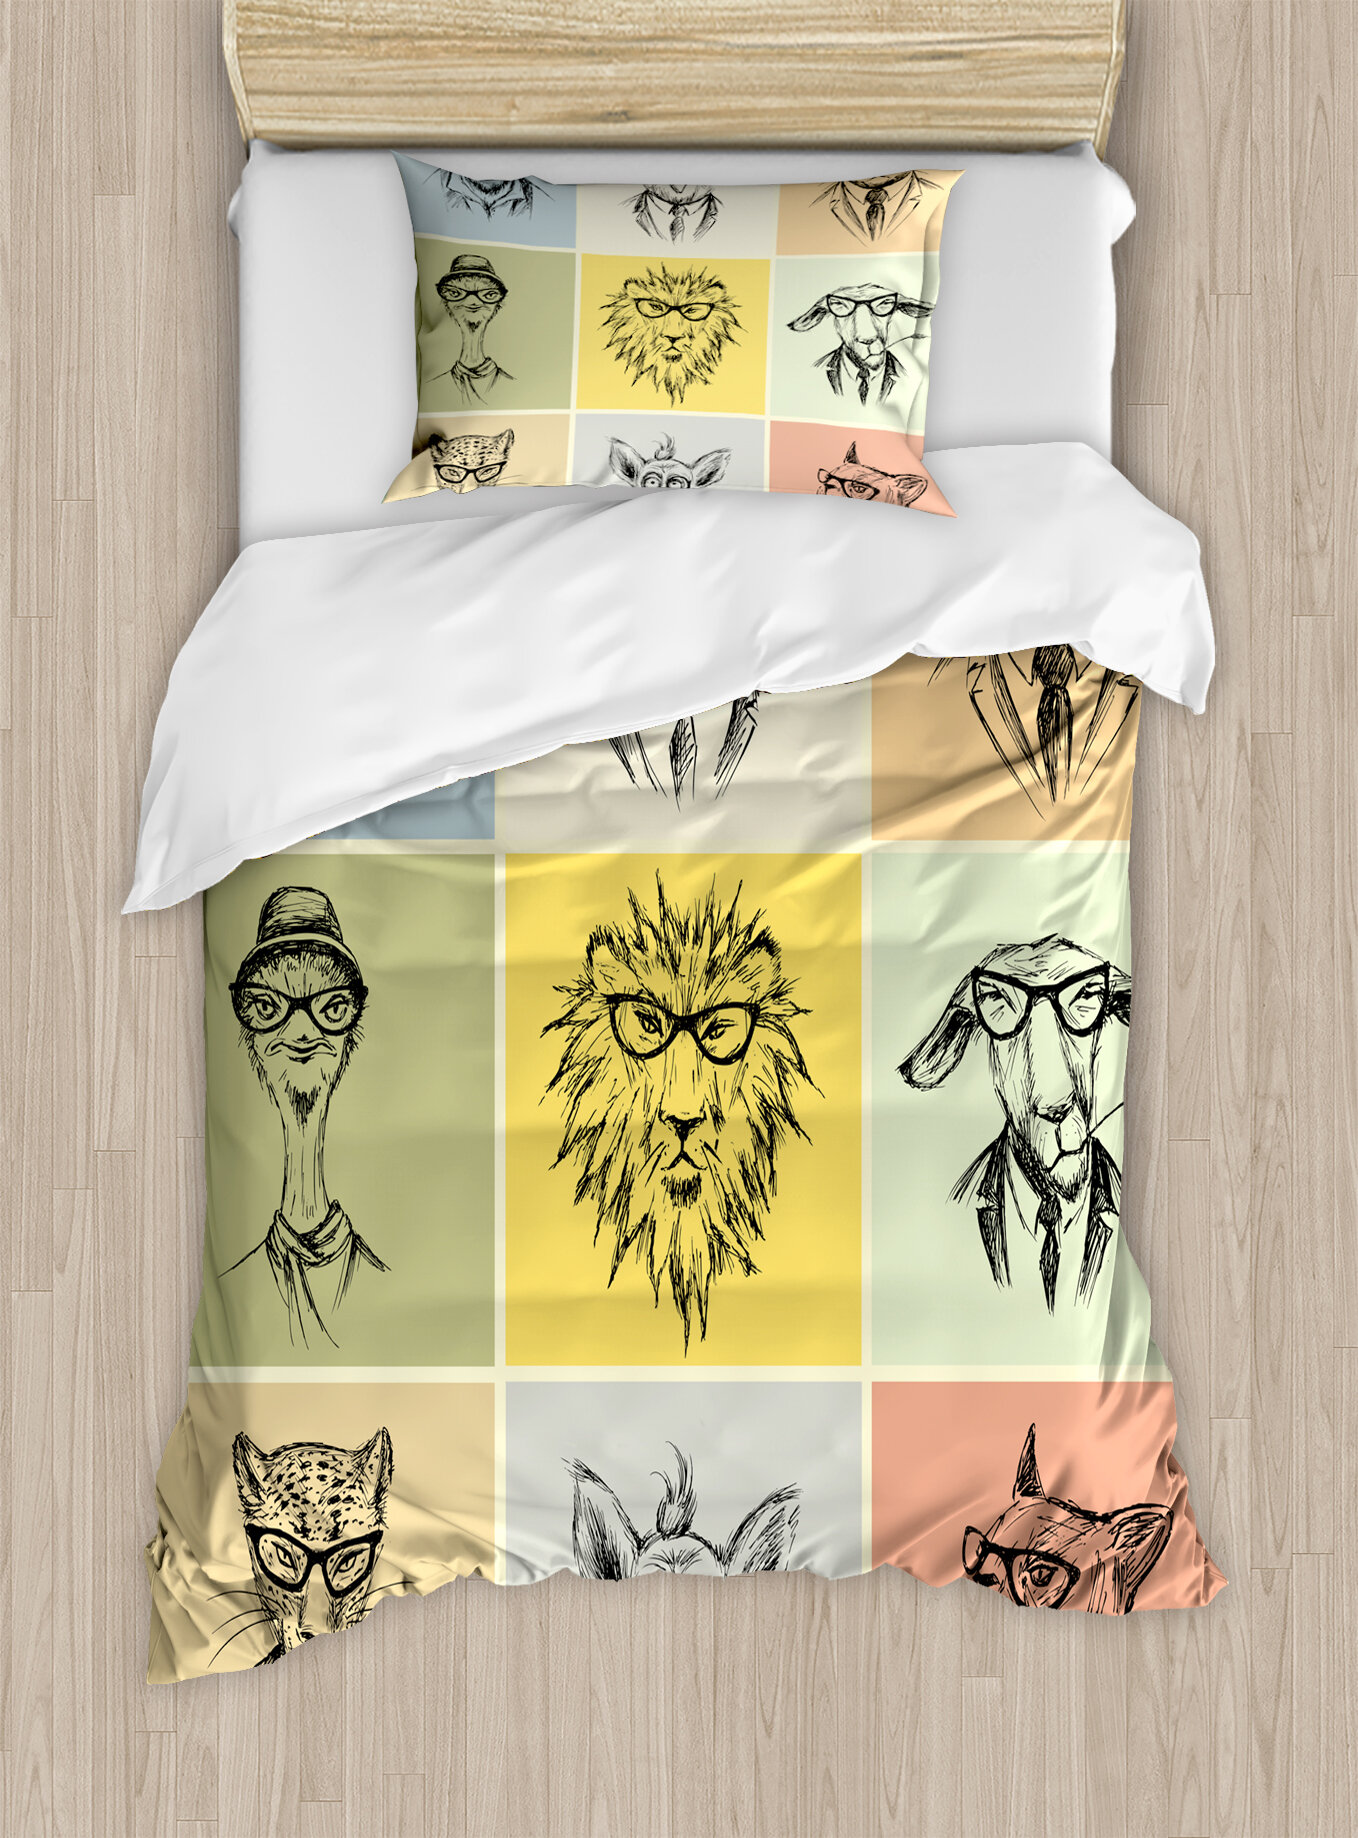 homedecorideasme bvb covers brides homedecorideas urban me mist merch outfitters like black band page bedding detail hoodie hipster duvet official veil